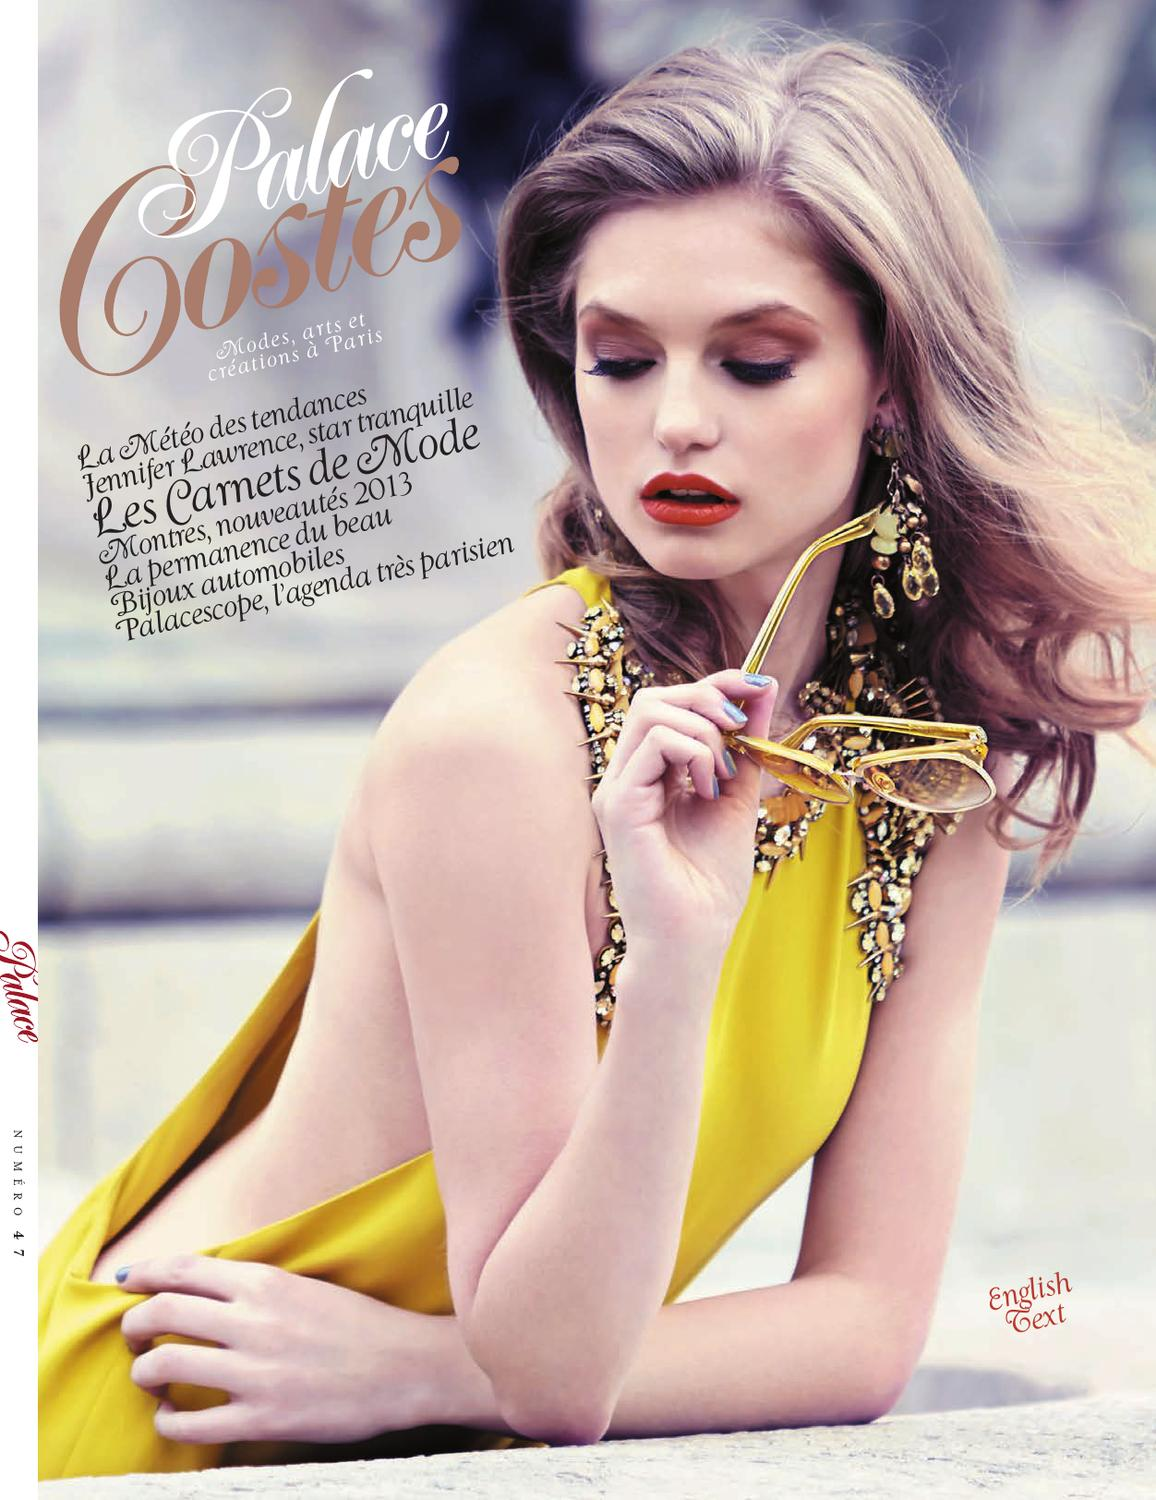 Palace Costes 47 by Palace Costes - issuu bf12184d11cb